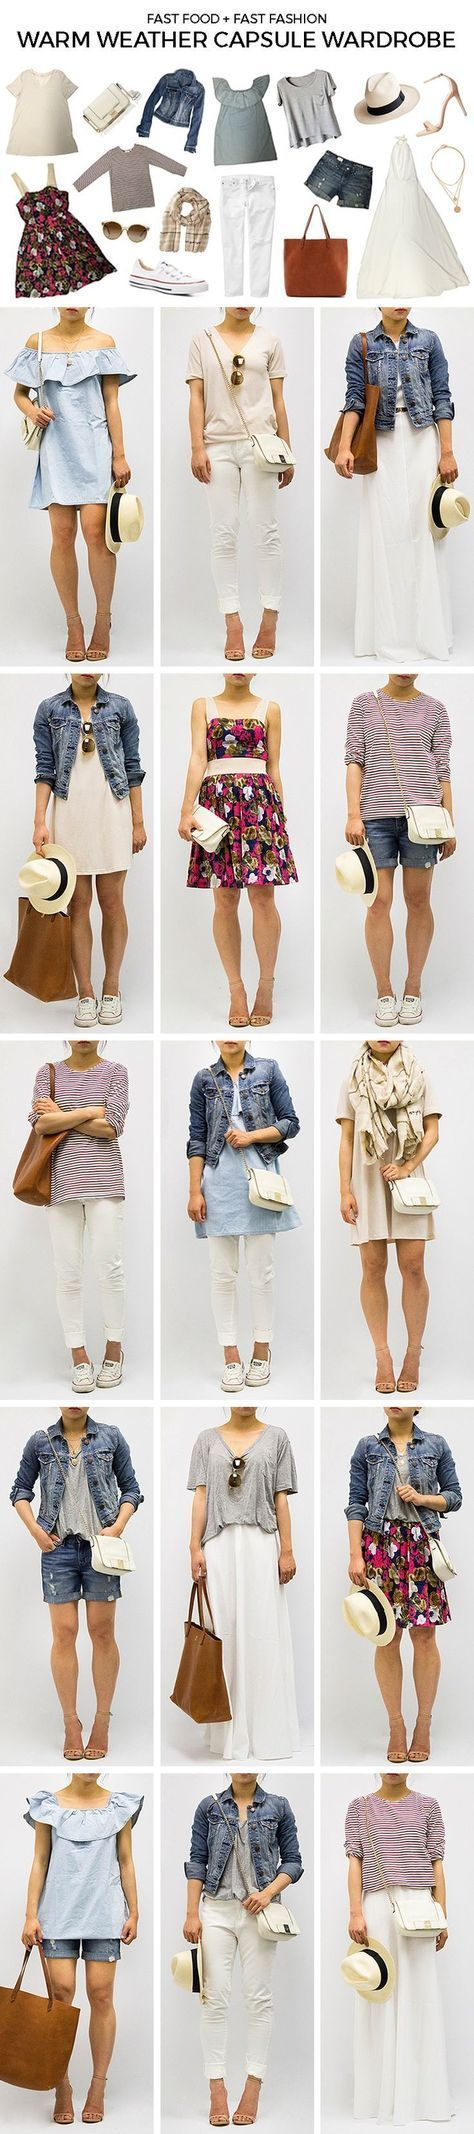 The Ultimate Capsule Wardrobe: Casual Infusion I Here's my travel wardrobe for 10 days in Japan: http://www.sewinlove.com.au/2013/03/28/10-days-japan-travel-capsule-wardrobe-%E6%97%A5%E6%9C%AC%E6%97%85%E8%A1%8C%E3%81%AE%E7%9D%80%E3%81%BE%E3%82%8F%E3%81%97